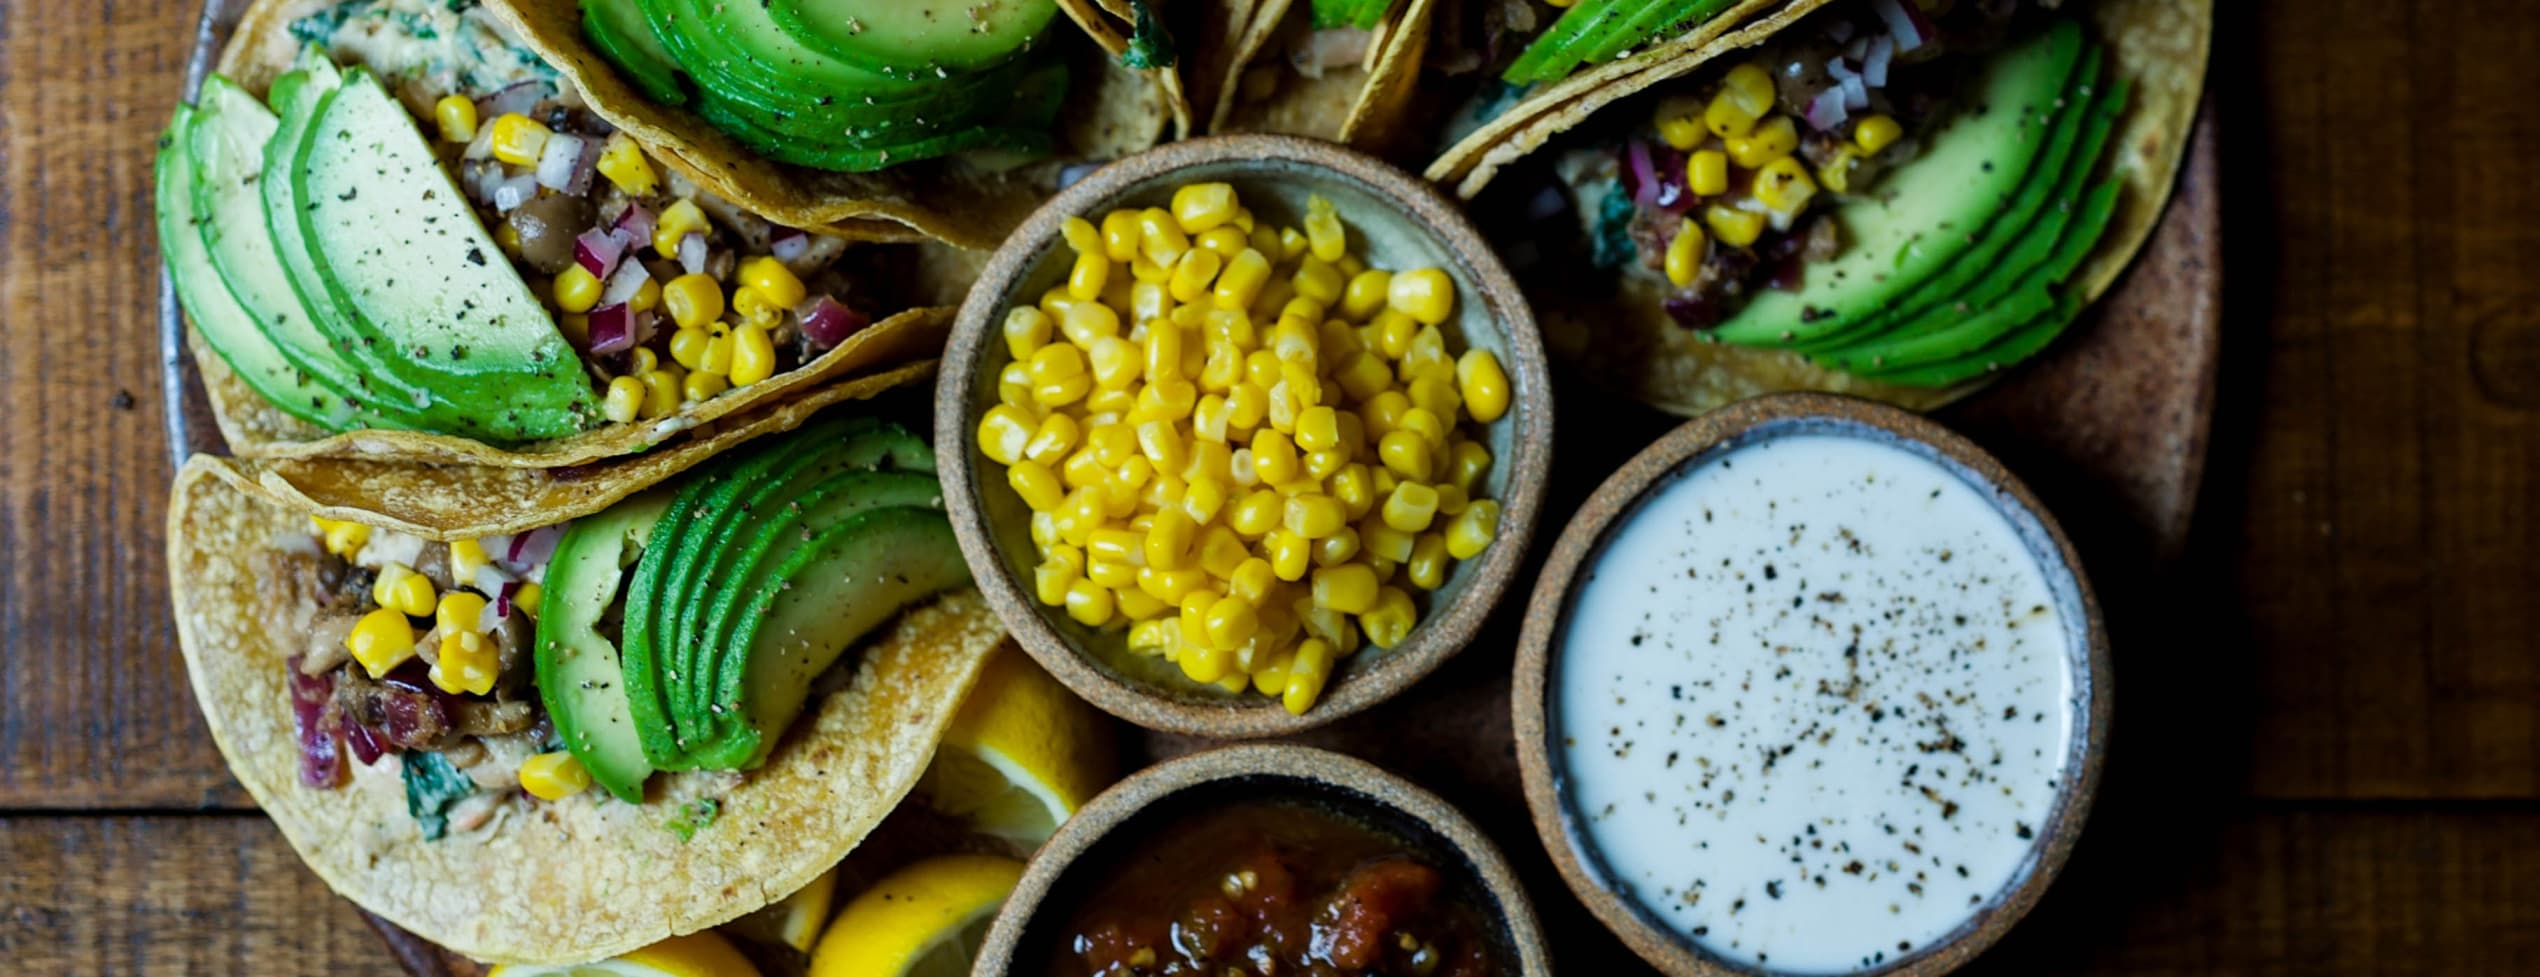 Real Mexican cooking - vegan style